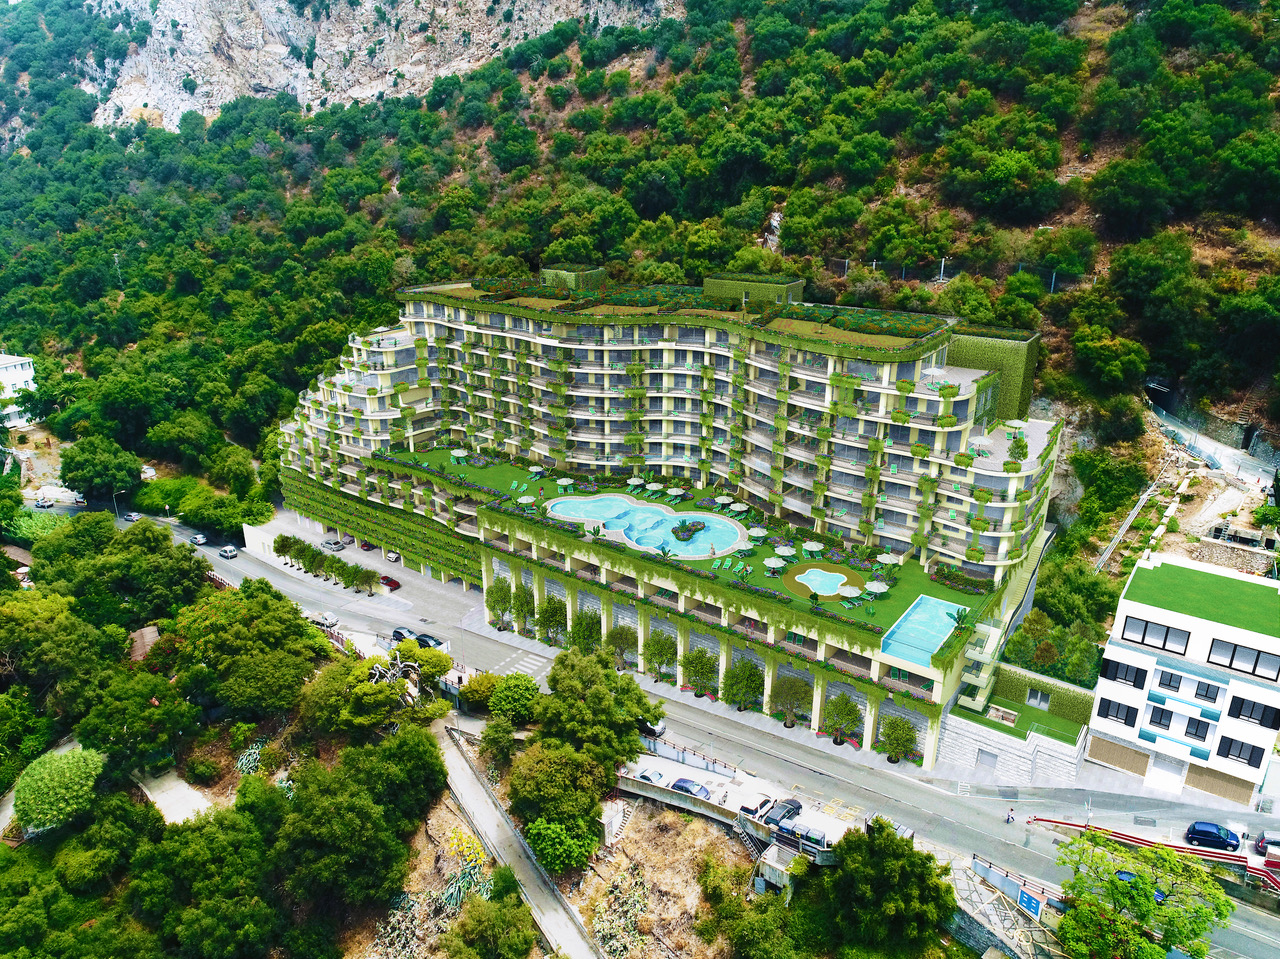 The Greenest Building Ever In Gibraltar – Literally! Image